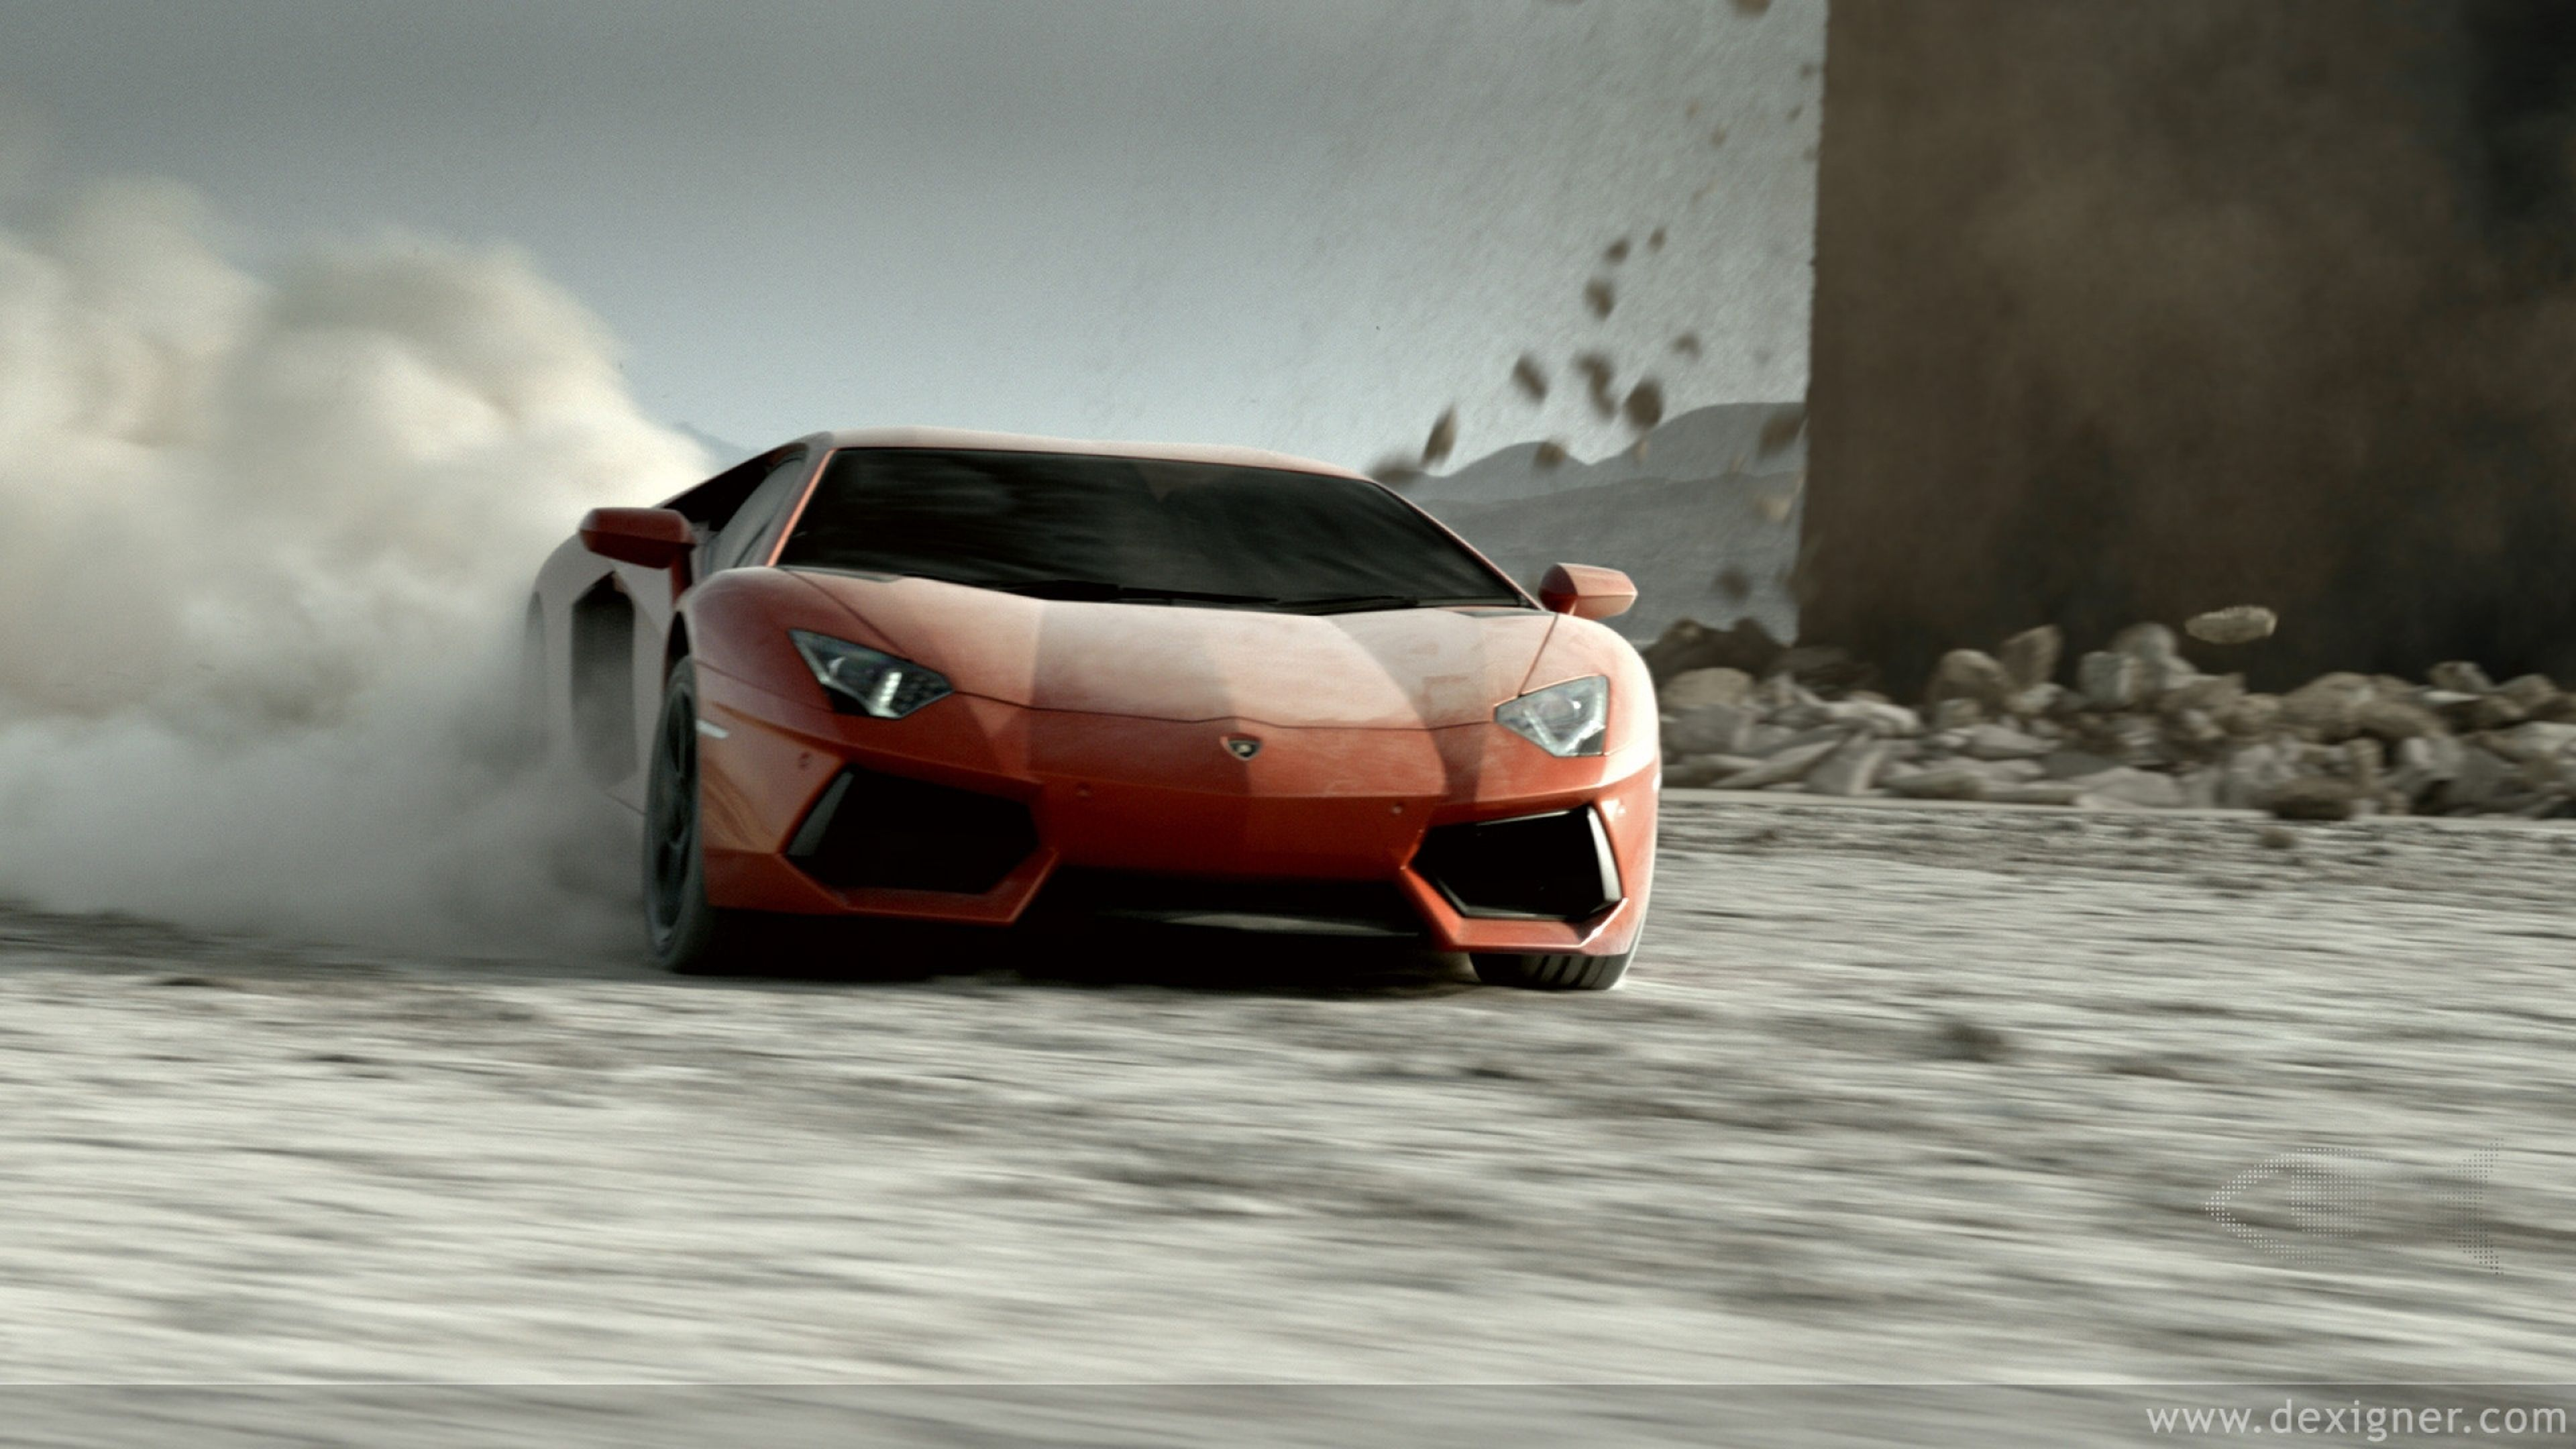 Amazing Lamborghini Aventador V12 Ultra HD 4K Wallpapers